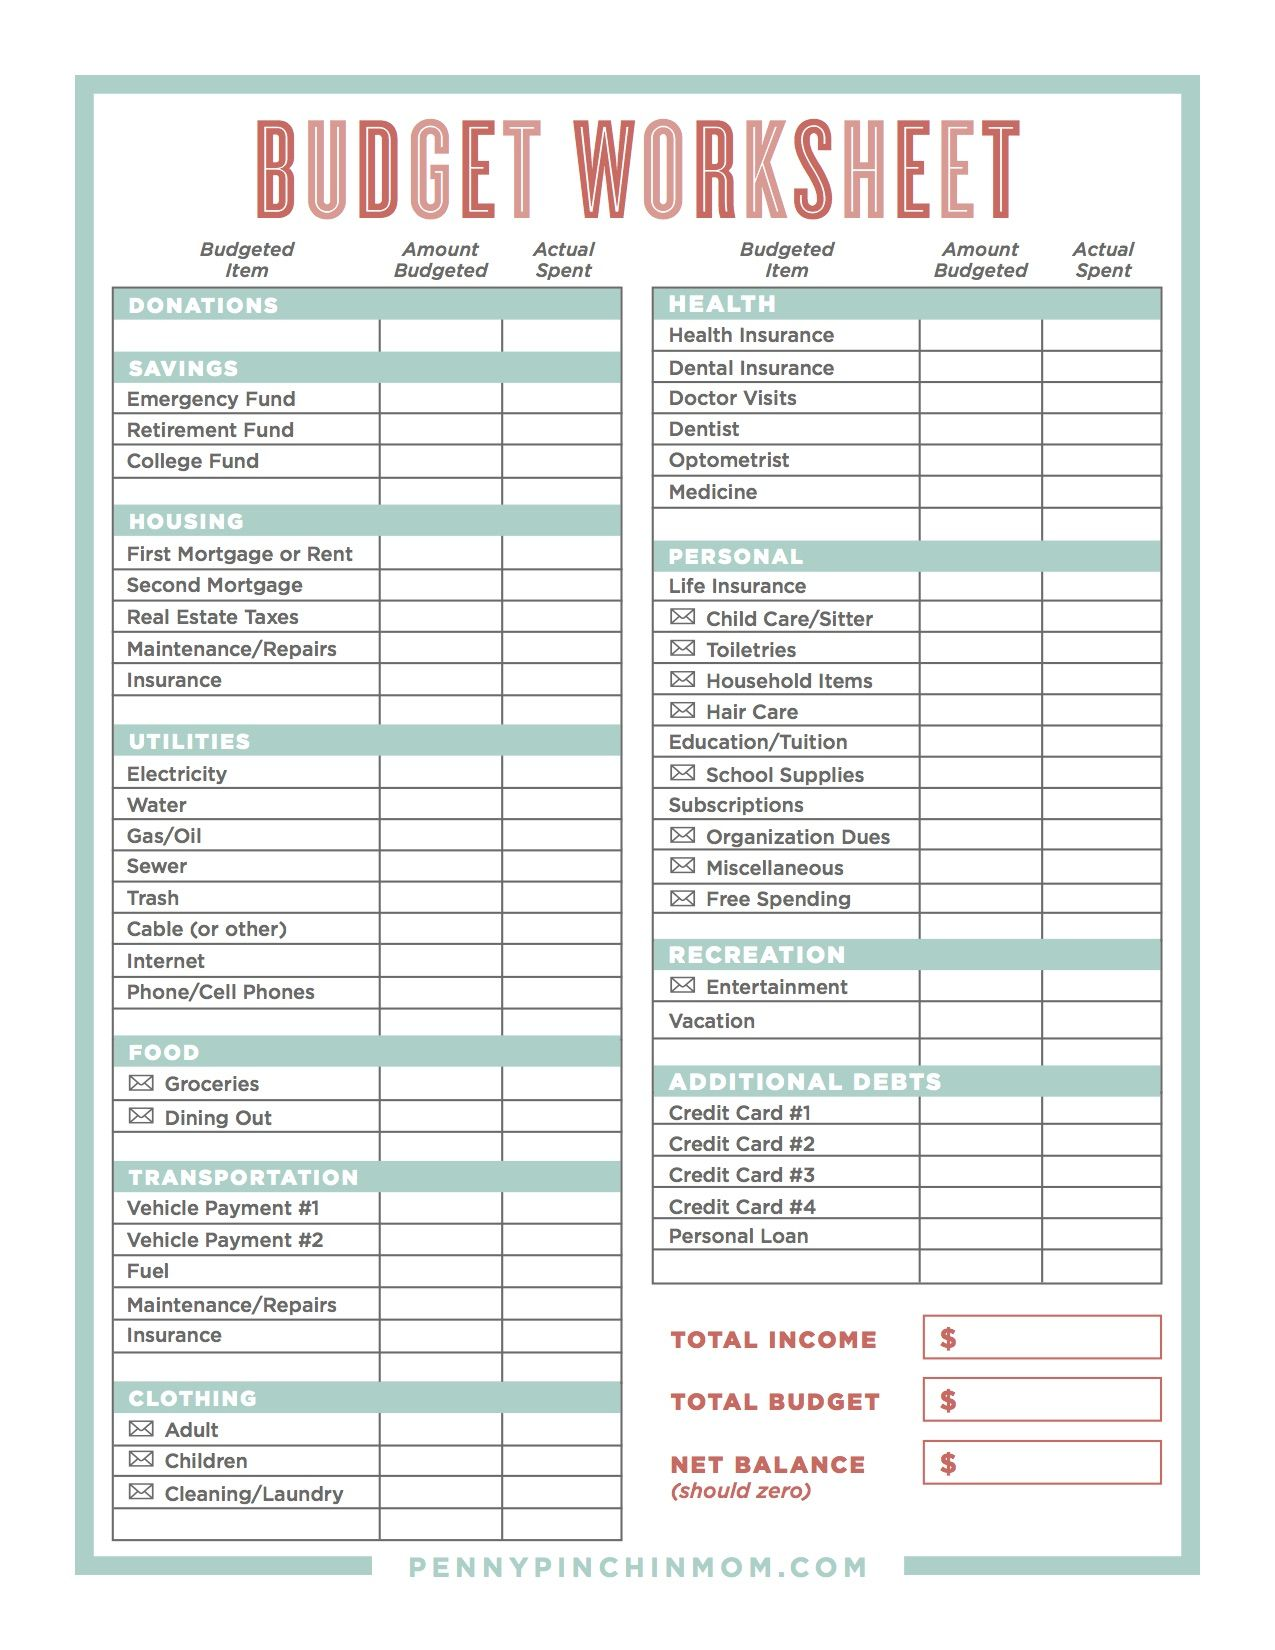 Worksheets Low Income Budget Worksheet the tricks for sticking to a budget budgeting 101 and budget